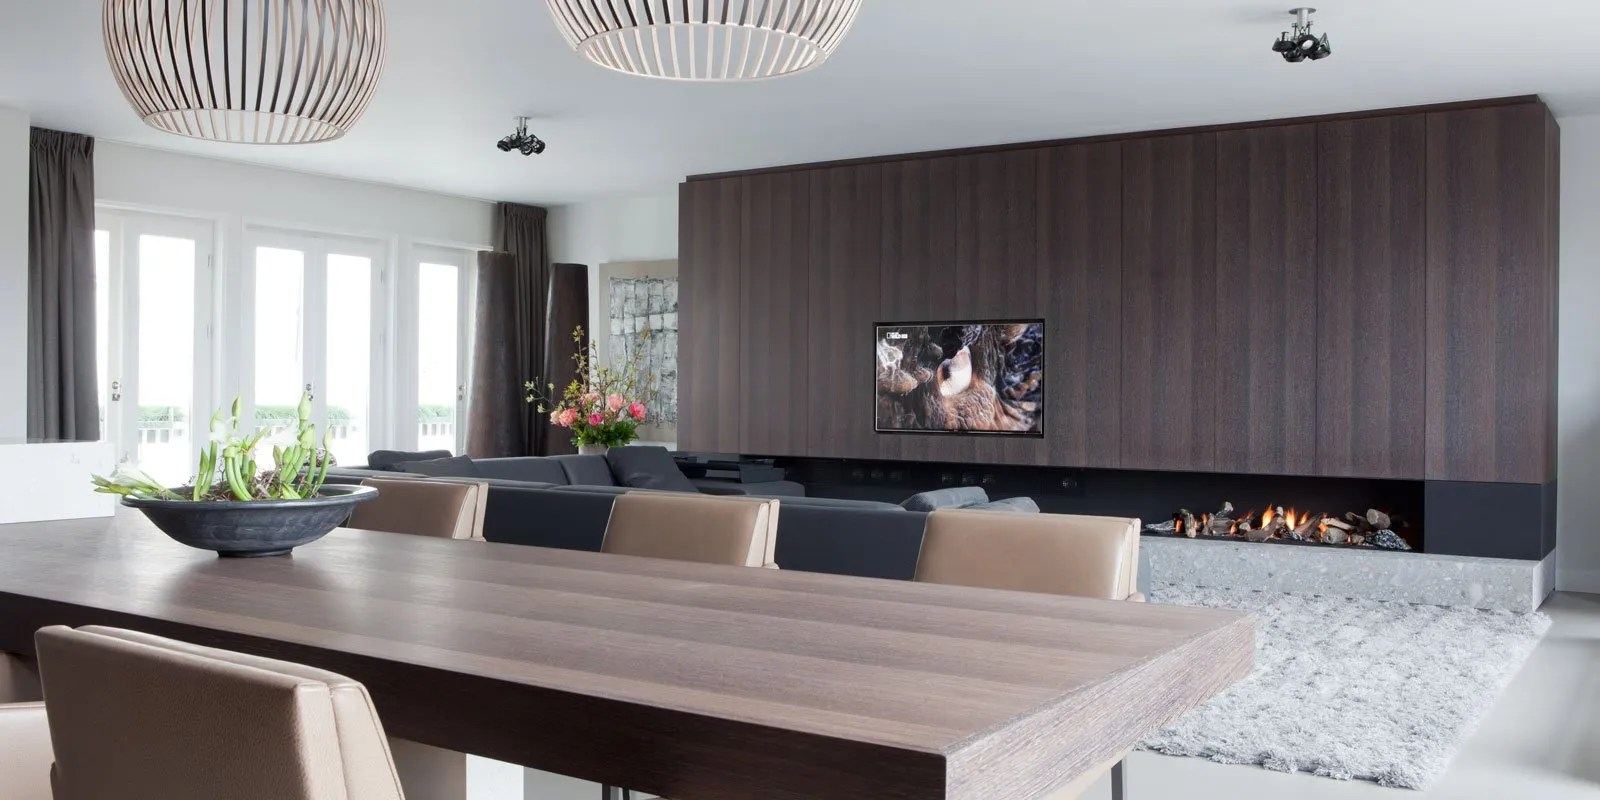 Interieur Ontwerper Remy Penthouse | Remy Meijers | The Art Of Living (nl)